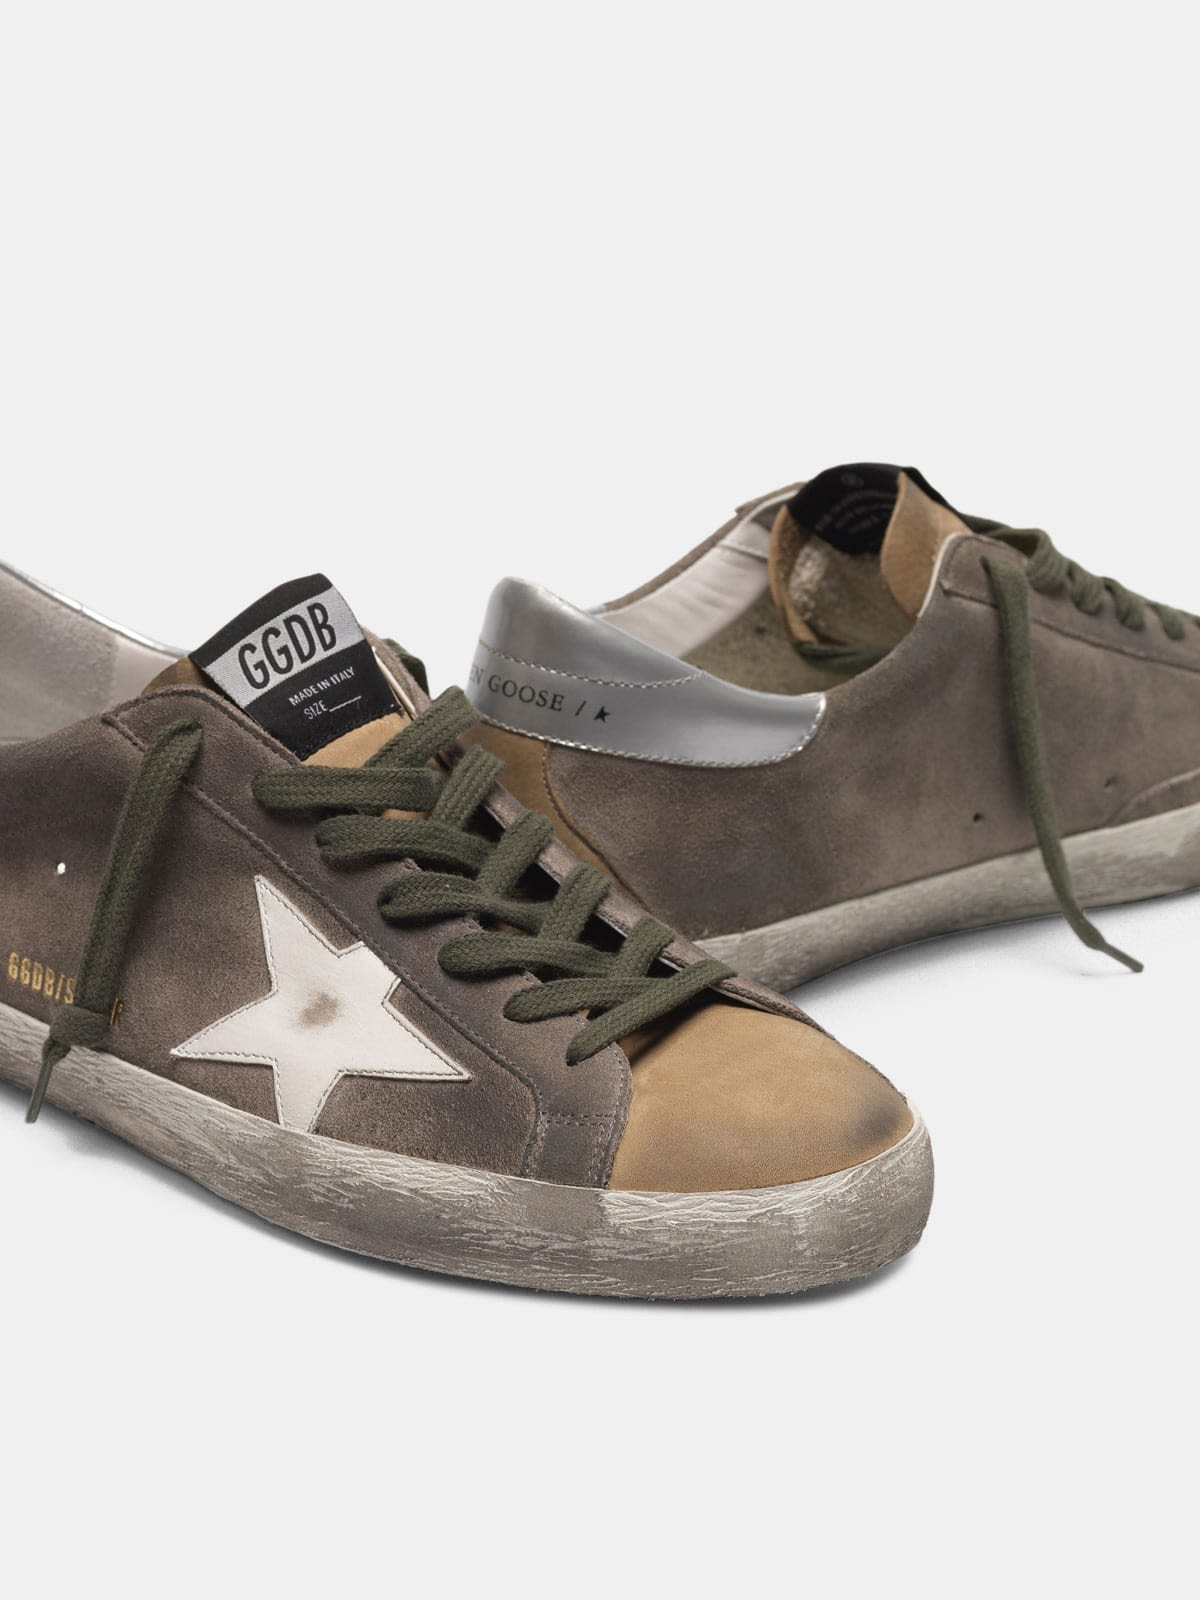 Two-tone Superstar sneakers in suede with white star